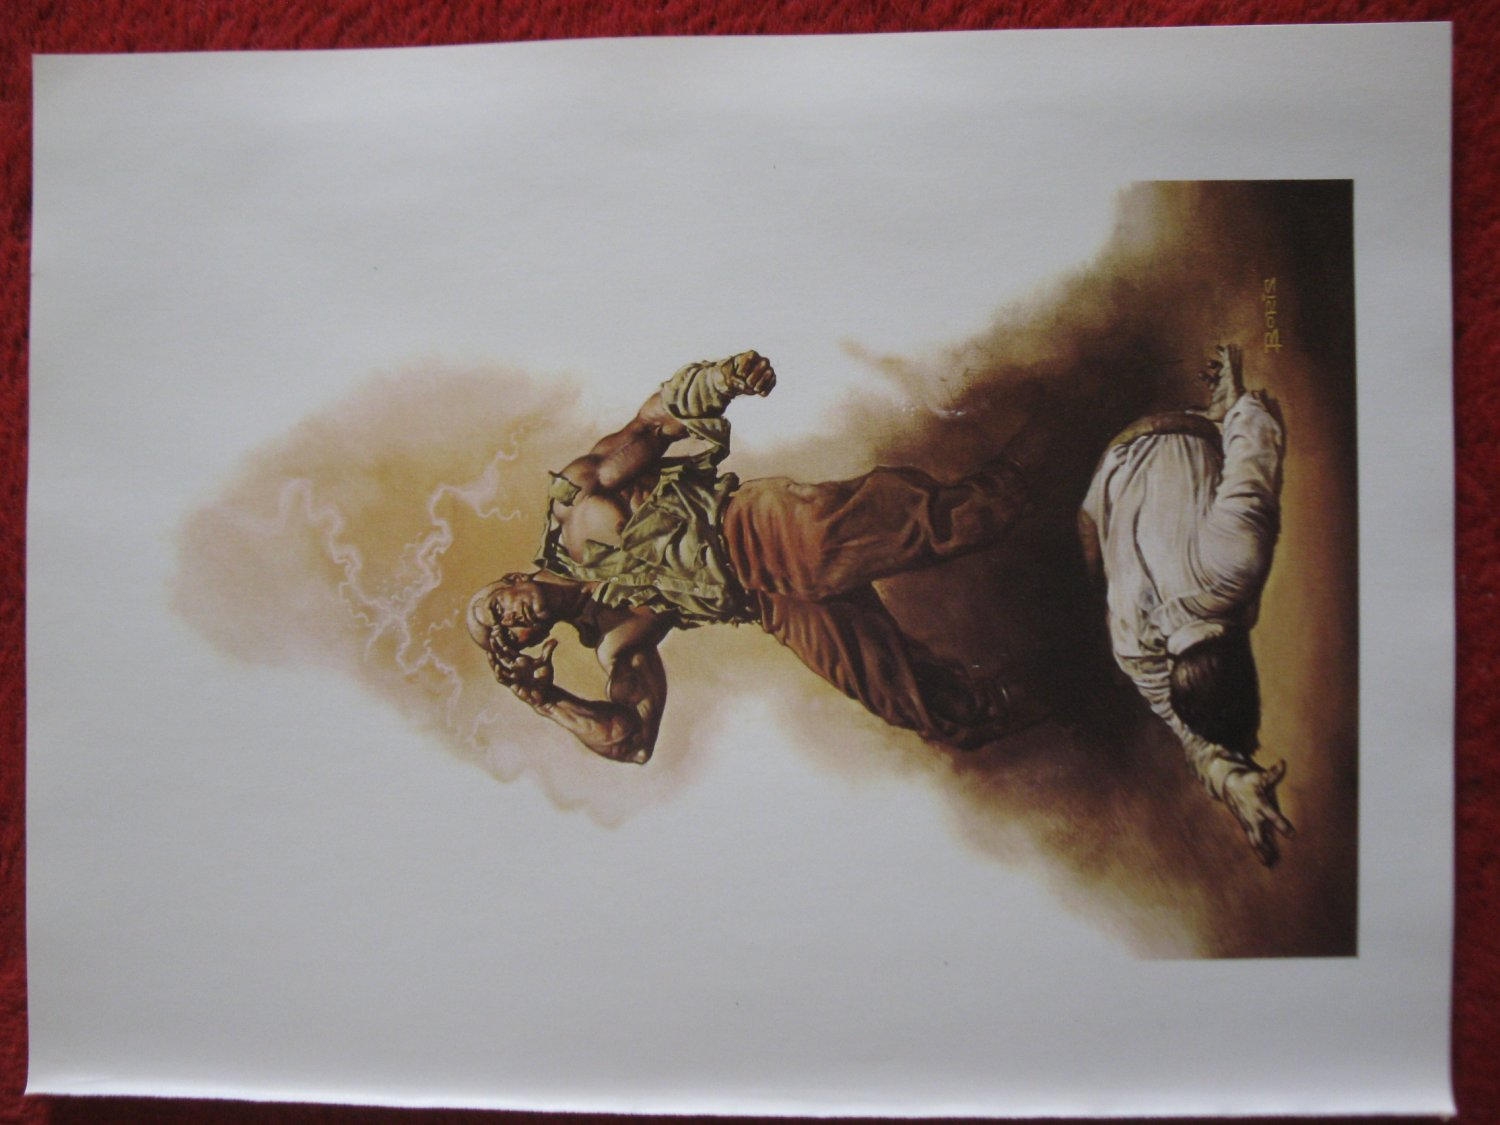 "vintage Boris Vallejo: The Boss of Terror, Doc Savage - 11.5"" x 8.5"" Book Plate Print"